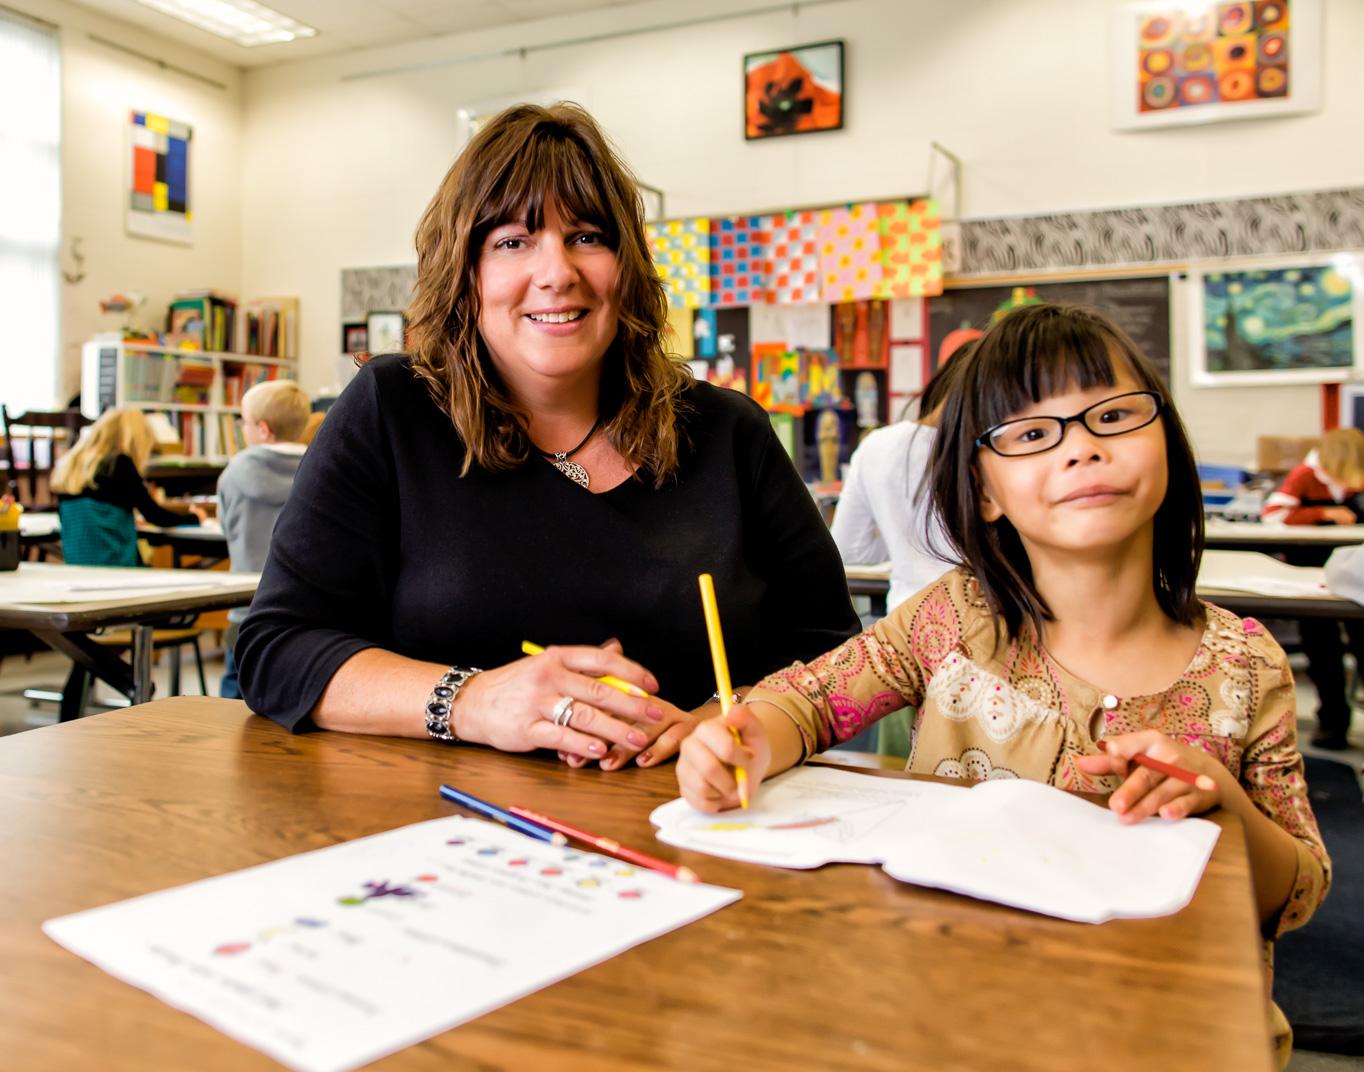 Connecticut woman with Multiple Sclerosis teaches young Asian girl in her classroom